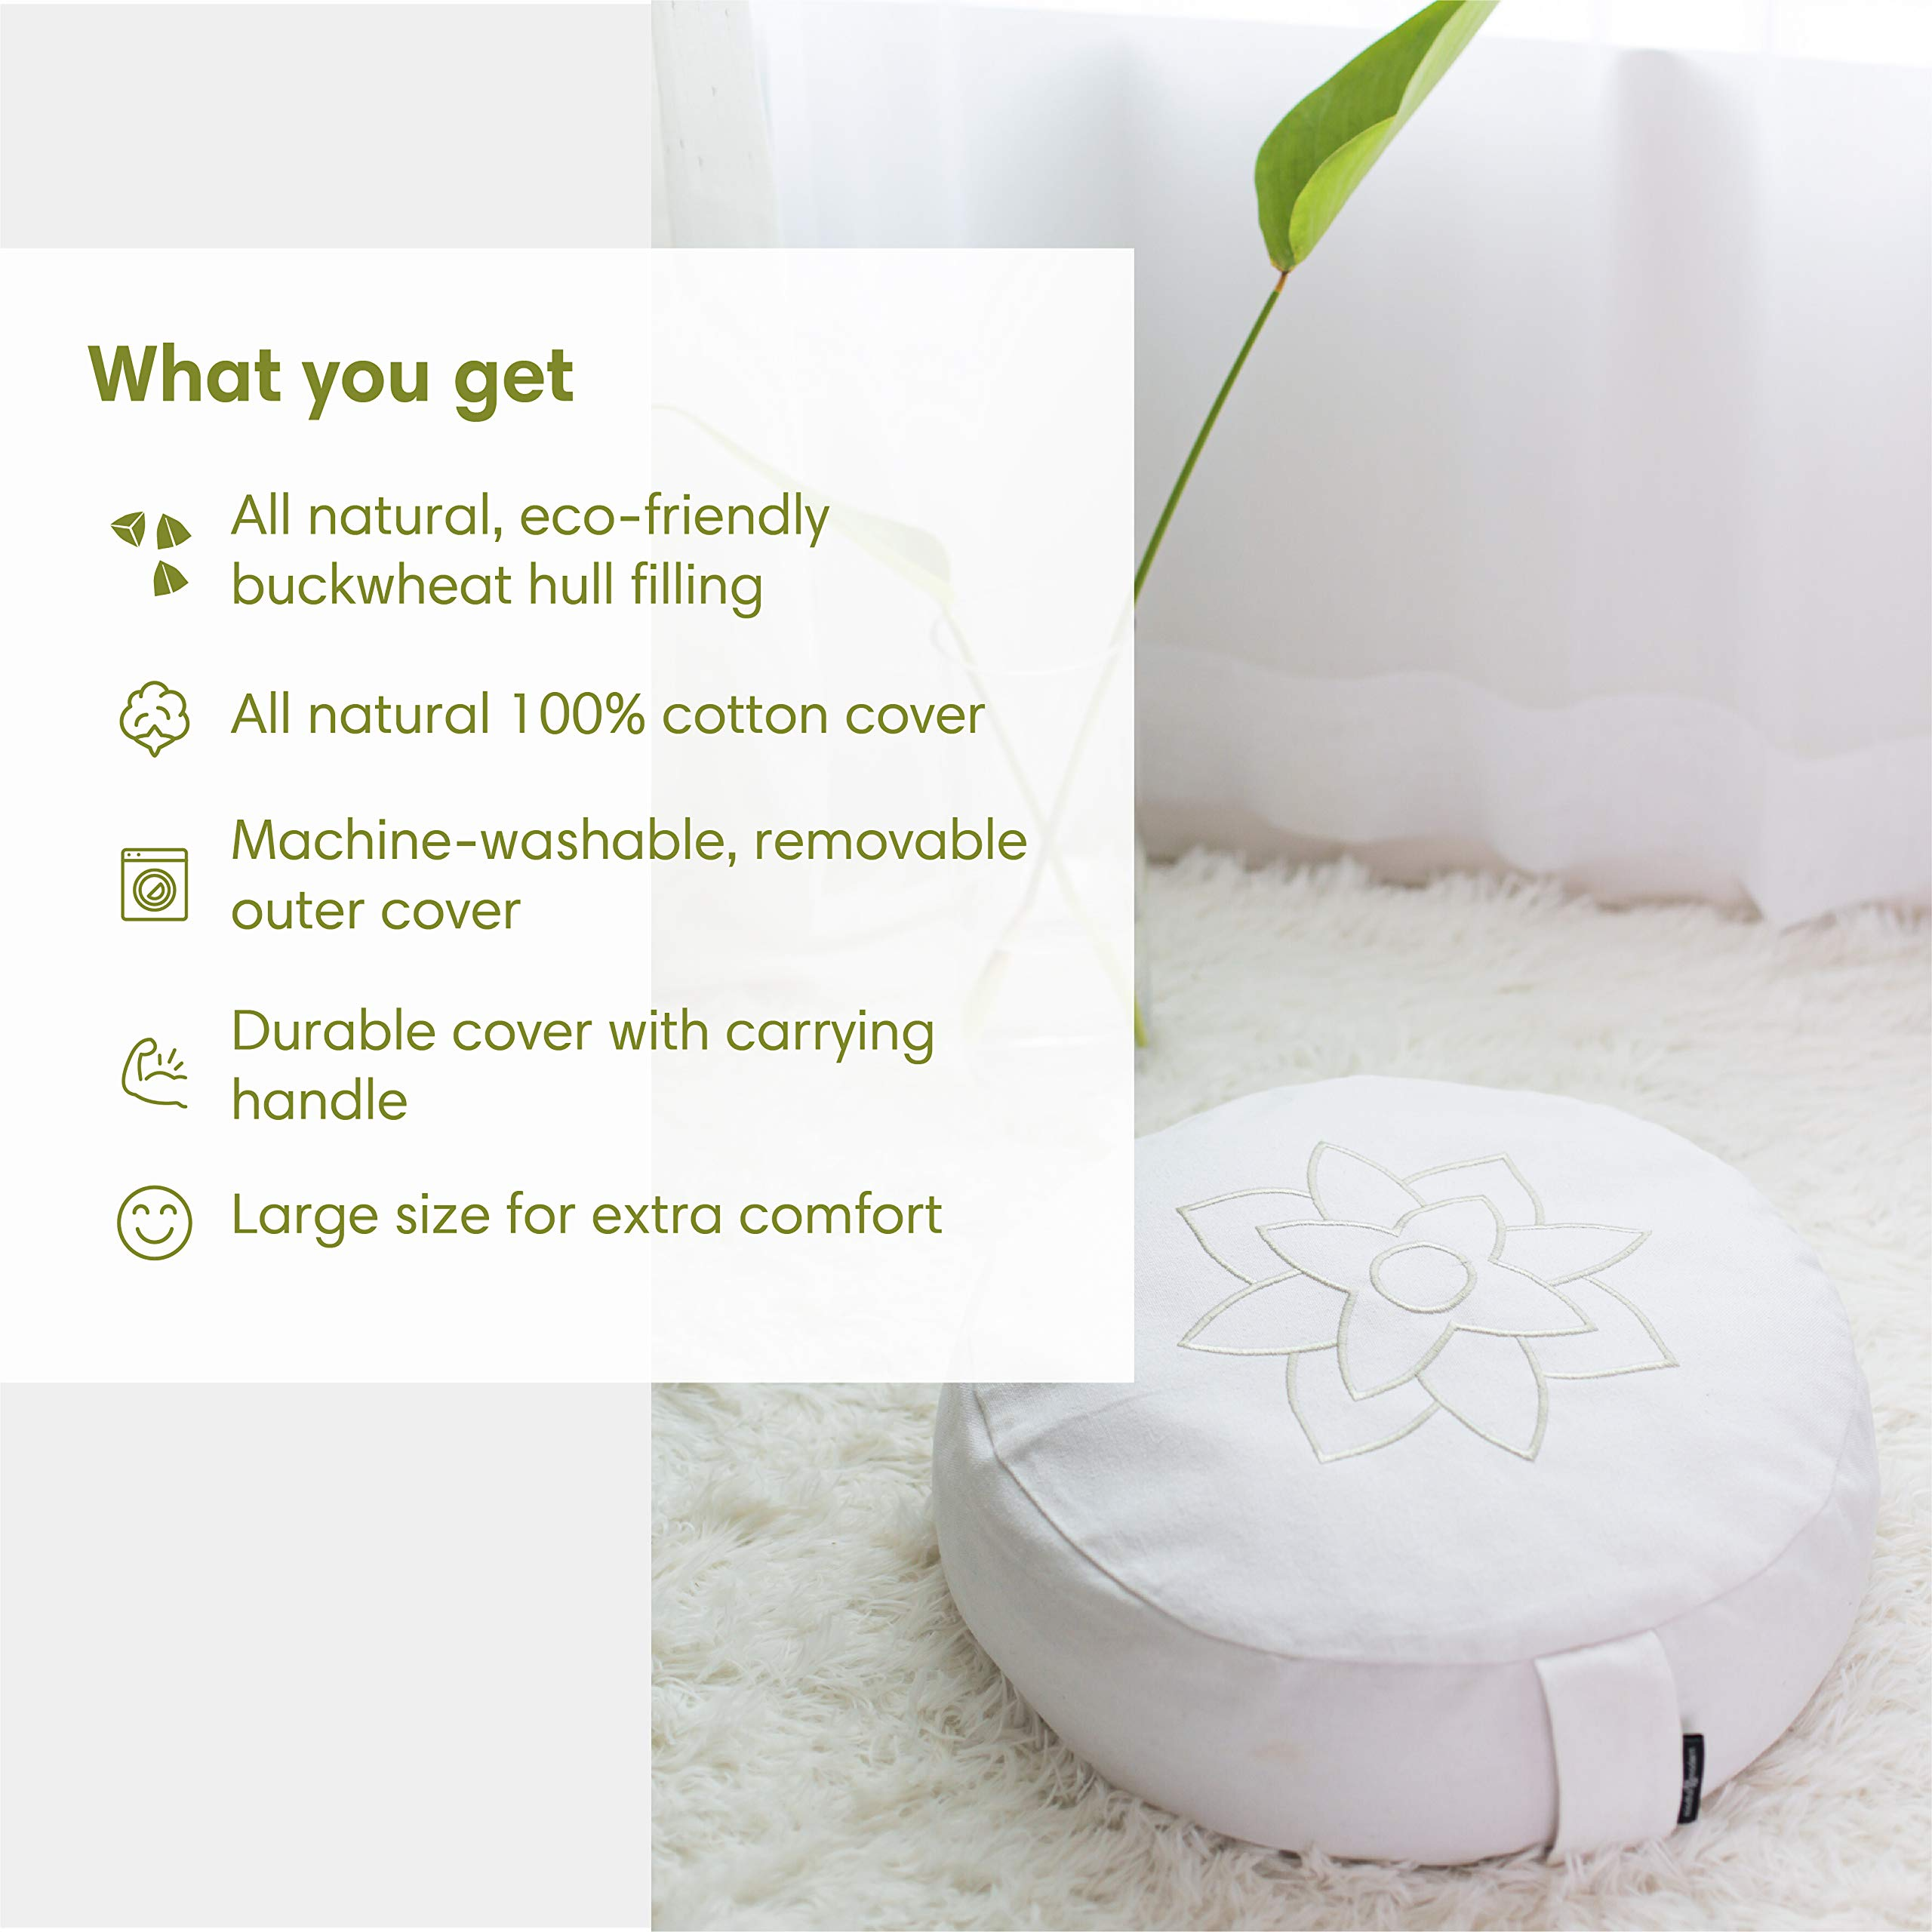 Buckwheat Hull Filled Half Moon Cushion with Removable Cover Carry Handle Travel Meditation Pillows for Sitting on Floor Mindful and Modern Compact Meditation Cushion